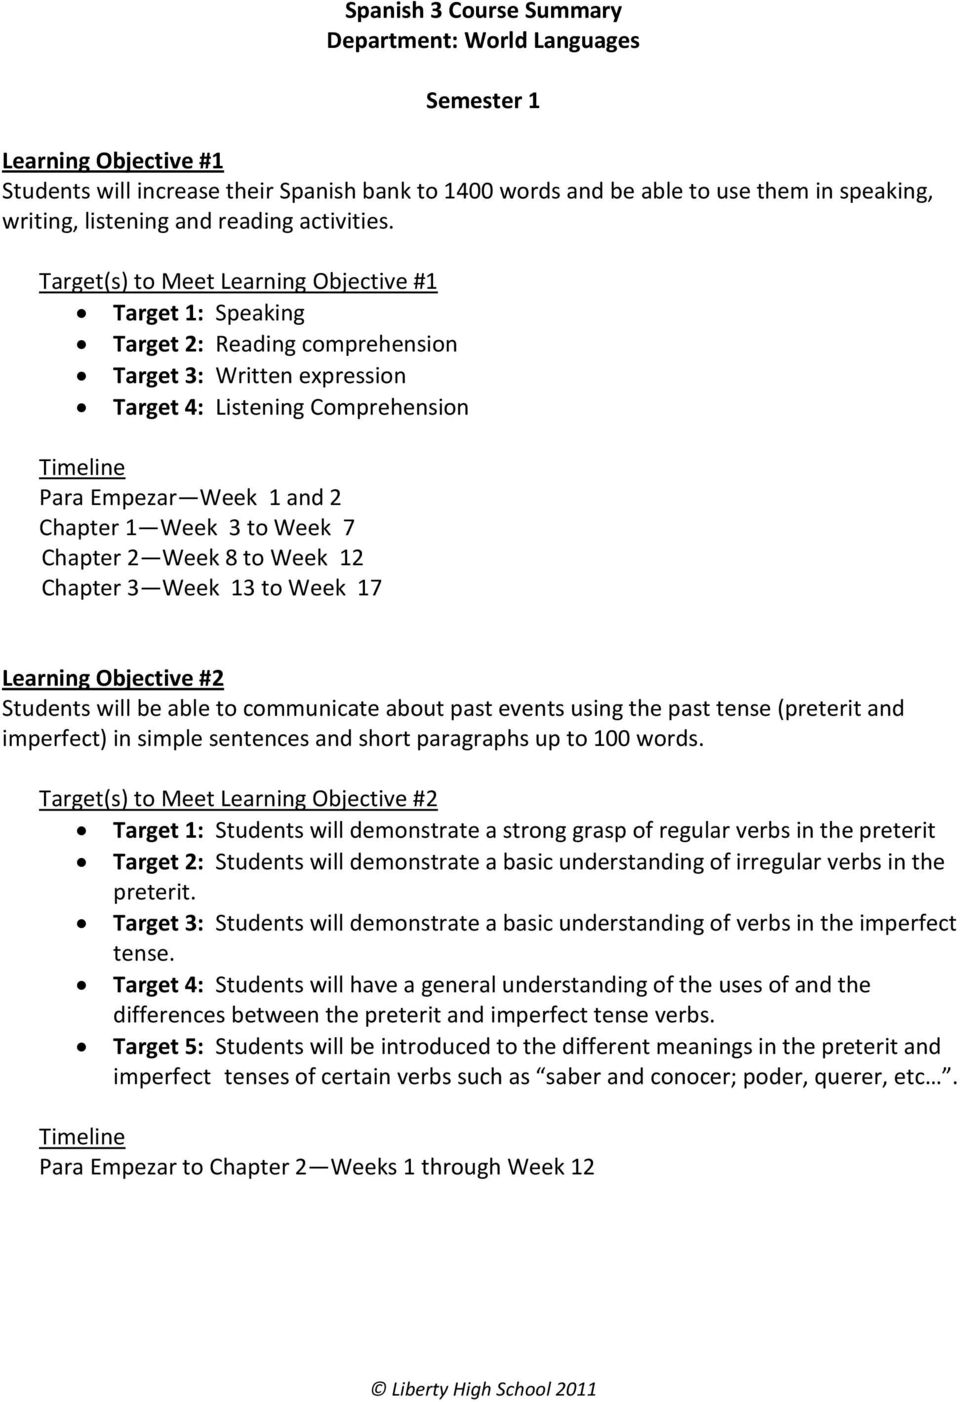 Target(s) to Meet Learning Objective #1 Target 1: Speaking Target 2: Reading comprehension Target 3: Written expression Target 4: Listening Comprehension Para Empezar Week 1 and 2 Chapter 1 Week 3 to